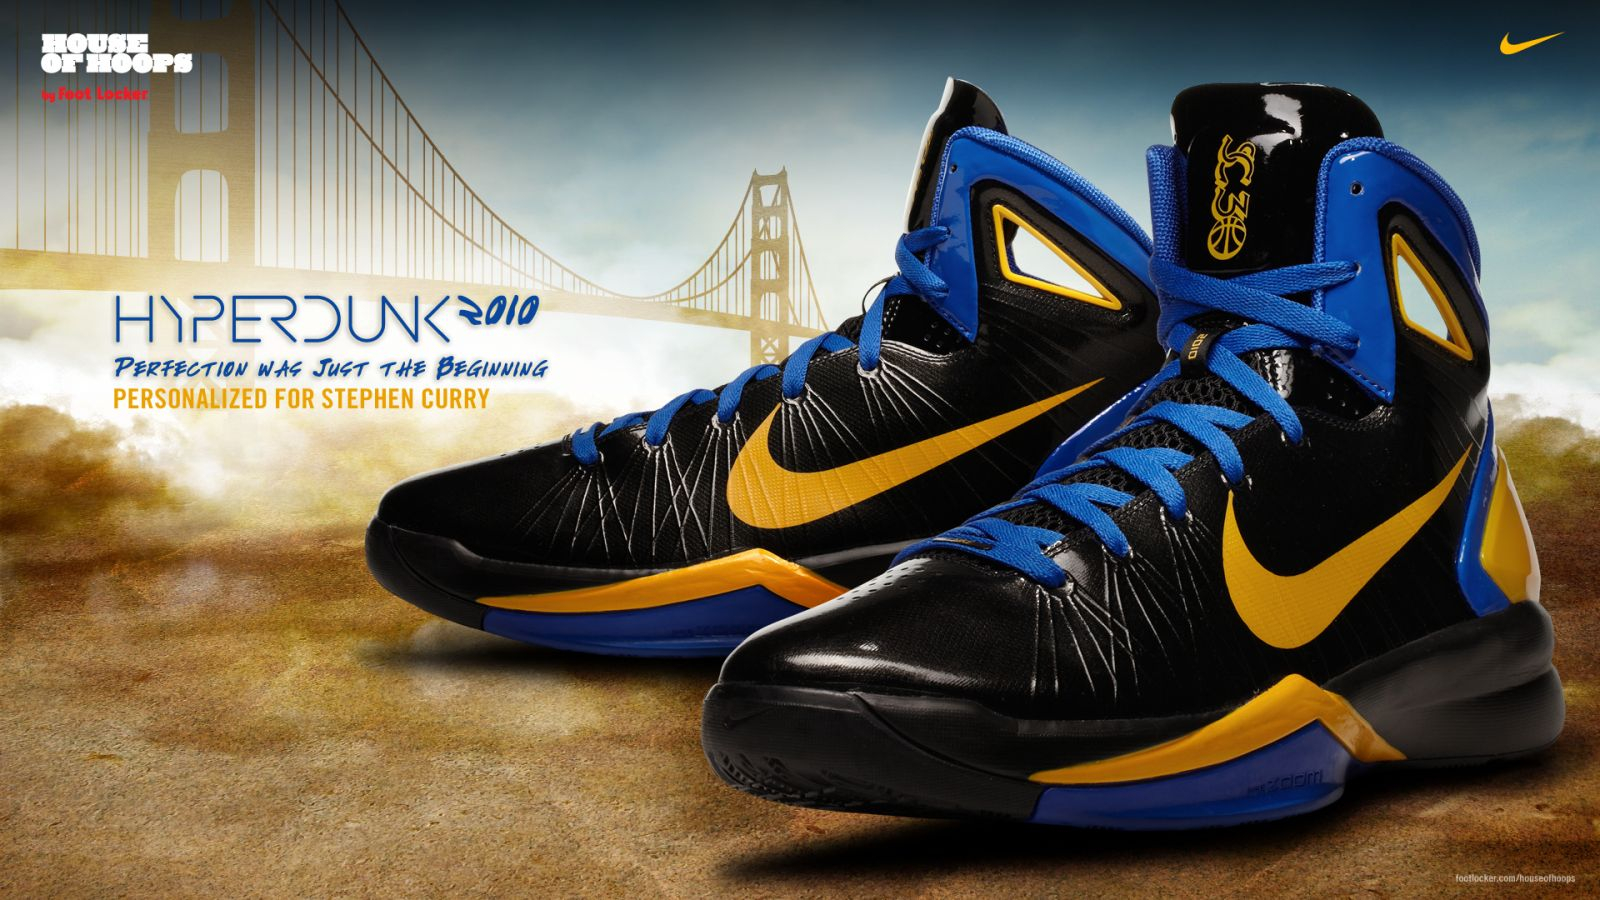 Nike Hyperdunk 2010 Stephen Curry Away Player Edition HoH